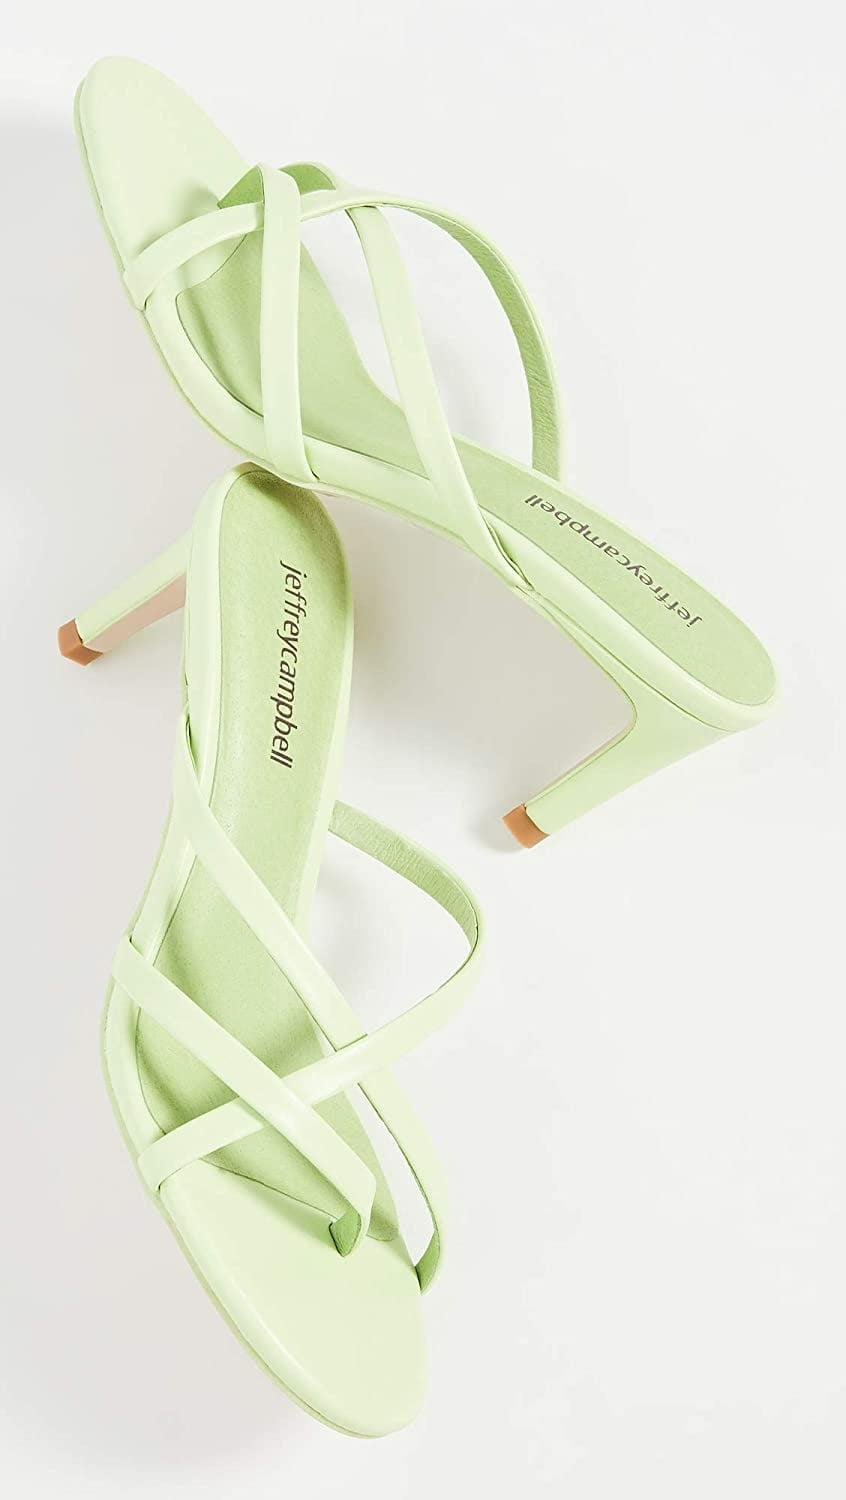 "<p><a href=""https://www.popsugar.com/buy/Jeffrey-Campbell-Ficelle-Sandals-583696?p_name=Jeffrey%20Campbell%20Ficelle%20Sandals&retailer=amazon.com&pid=583696&price=53&evar1=fab%3Aus&evar9=47563146&evar98=https%3A%2F%2Fwww.popsugar.com%2Ffashion%2Fphoto-gallery%2F47563146%2Fimage%2F47564522%2FJeffrey-Campbell-Ficelle-Sandals&list1=shopping%2Camazon%2Cfashion%20news%2Csummer%20fashion%2Csale%20shopping%2Cfashion%20shopping&prop13=api&pdata=1"" class=""link rapid-noclick-resp"" rel=""nofollow noopener"" target=""_blank"" data-ylk=""slk:Jeffrey Campbell Ficelle Sandals"">Jeffrey Campbell Ficelle Sandals</a> ($53)</p>"